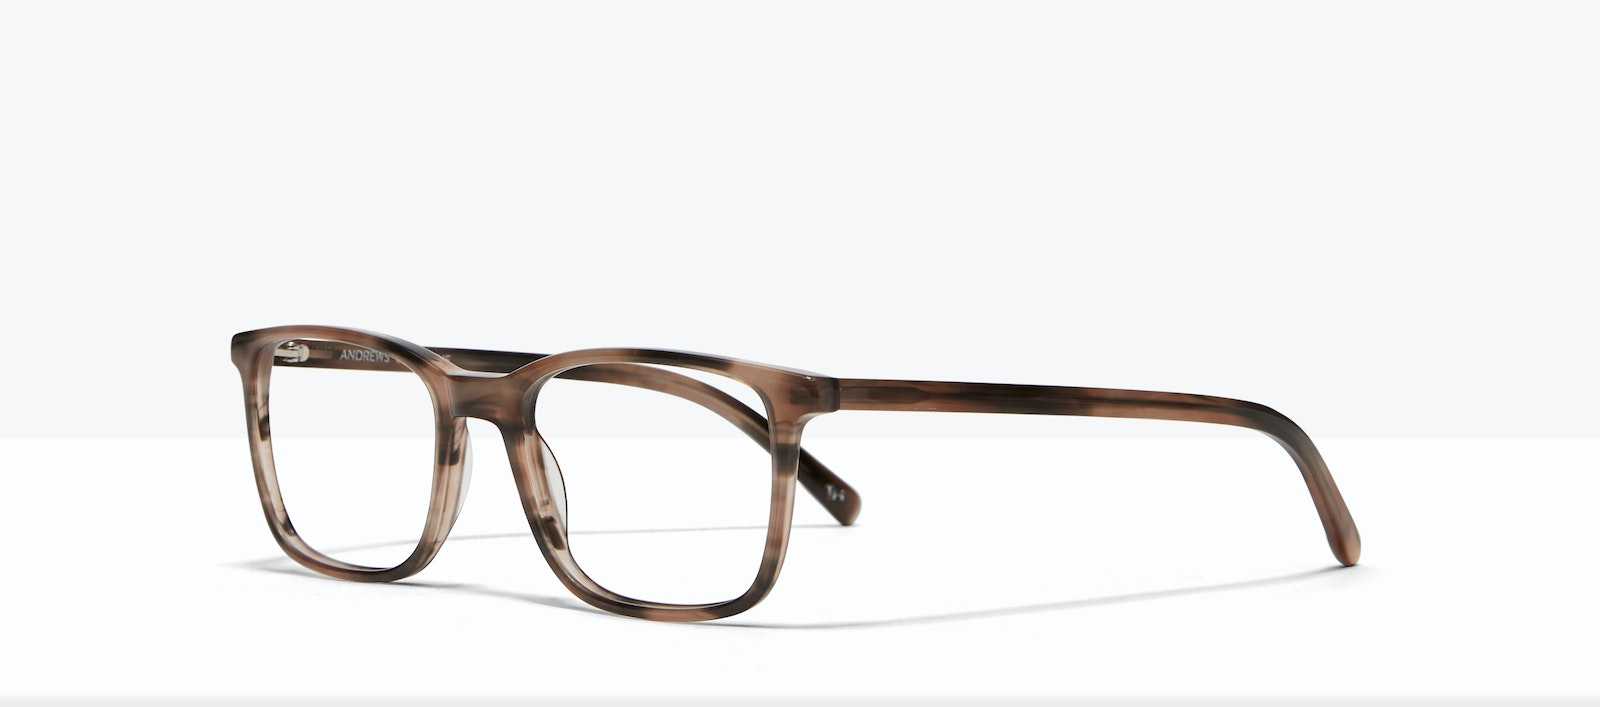 Affordable Fashion Glasses Square Eyeglasses Men Andrews Shoreline Tilt